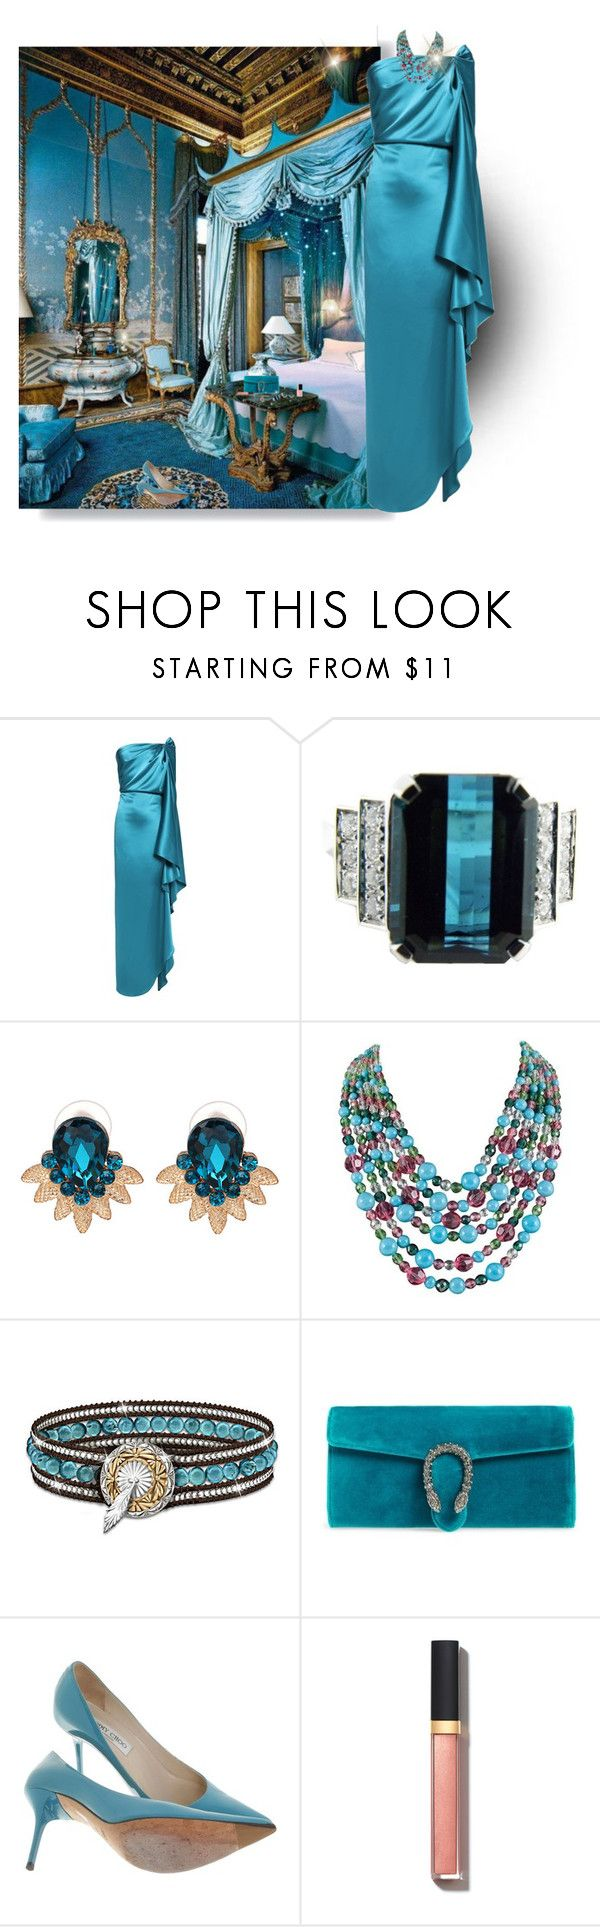 """""""Teal"""" by deborah-518 ❤ liked on Polyvore featuring Gianluca Capannolo, WithChic, Coppola e Toppo, The Bradford Exchange, Gucci, Jimmy Choo, Chanel and Guerlain"""